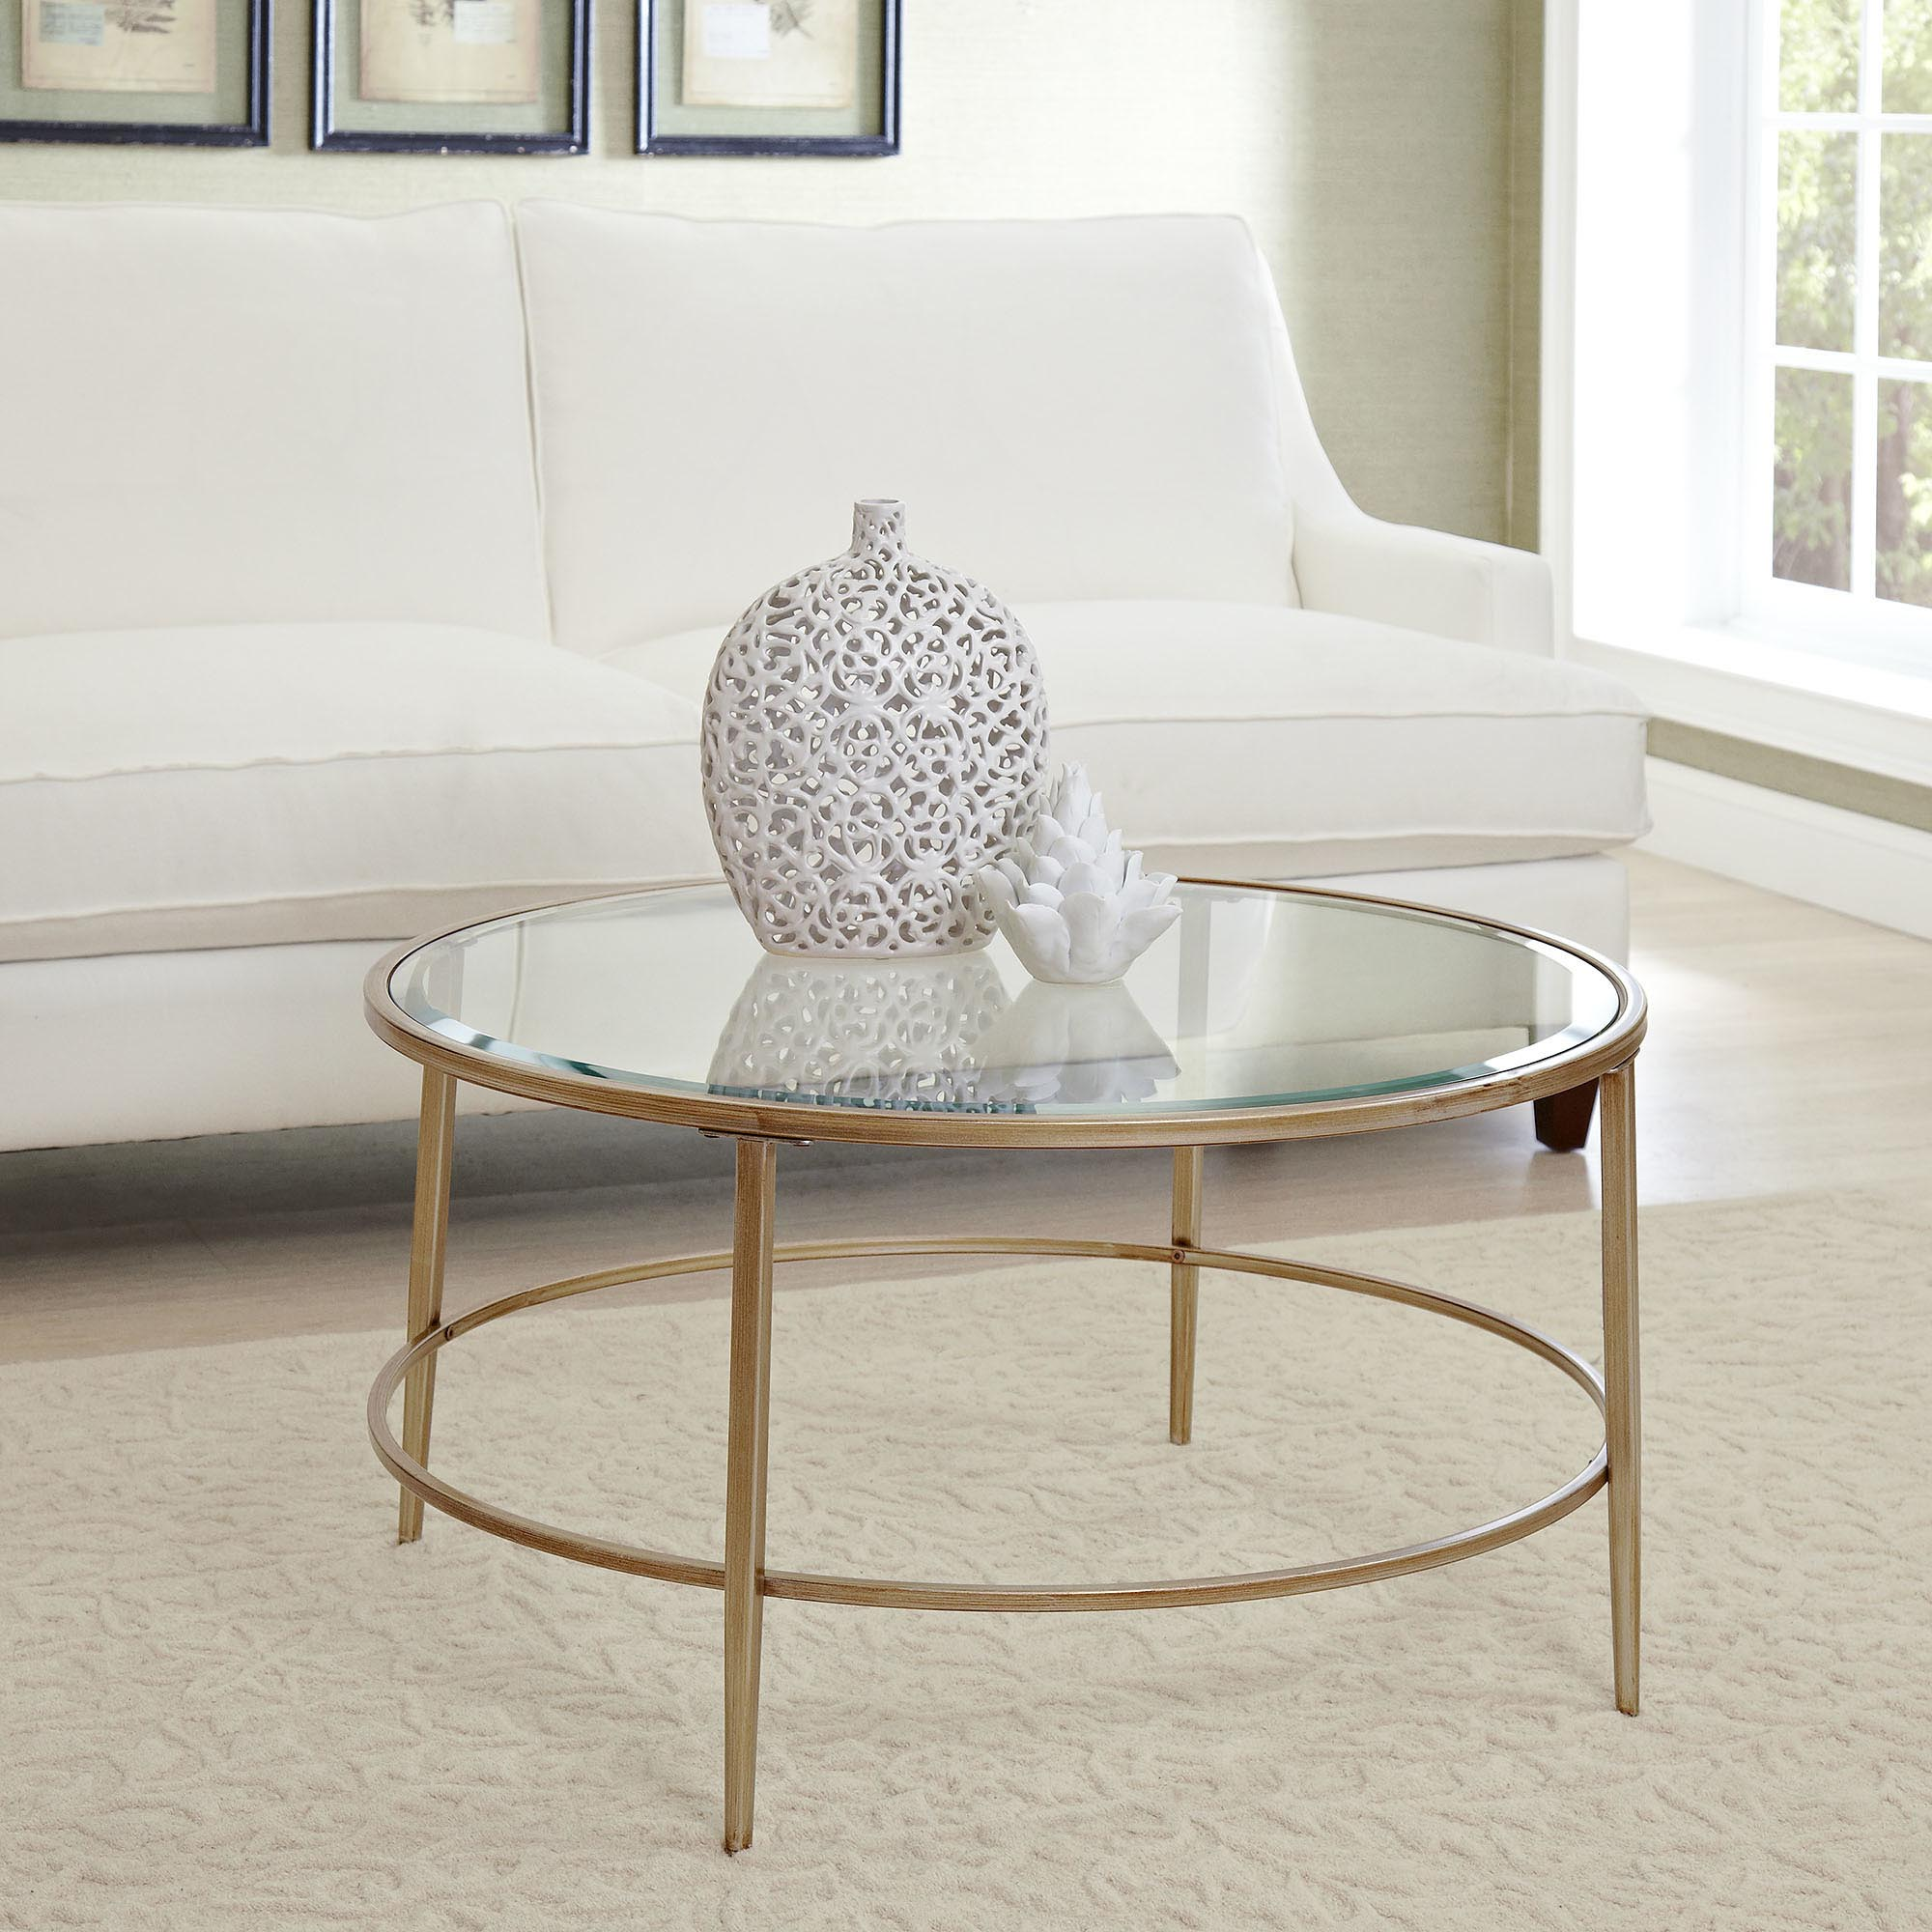 Round Gold Coffee Table